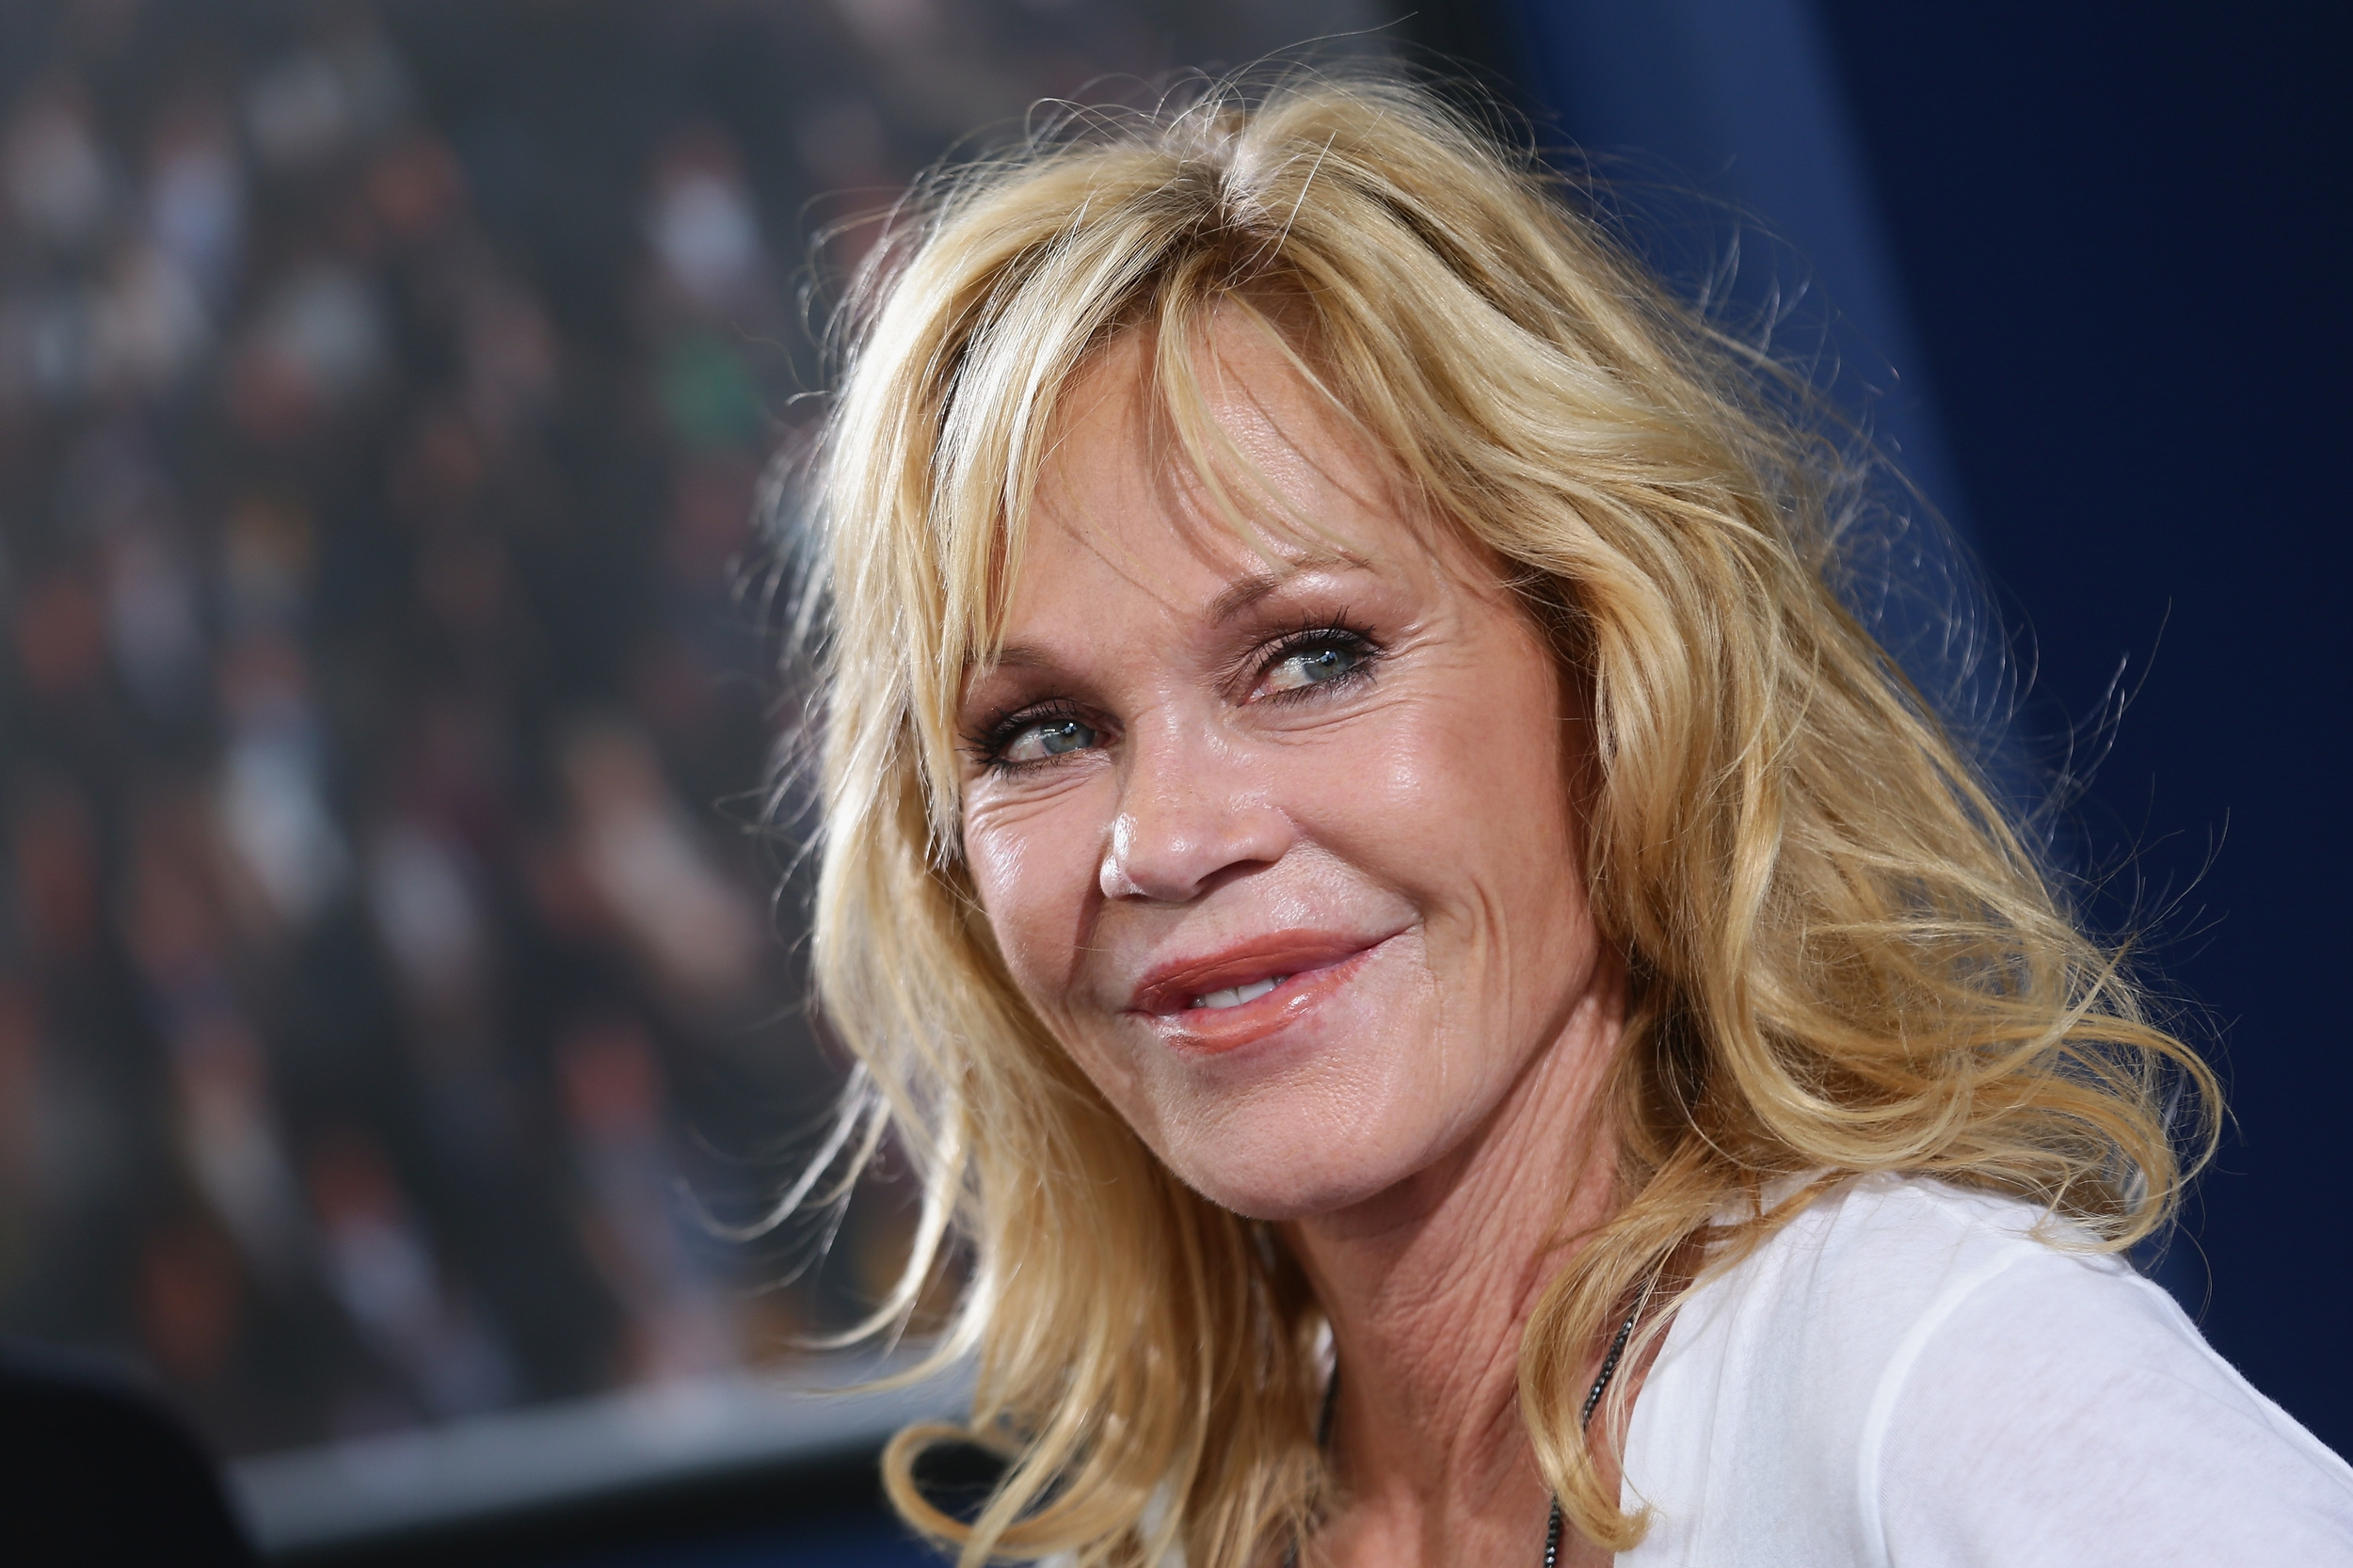 Pictures Of Melanie Griffith